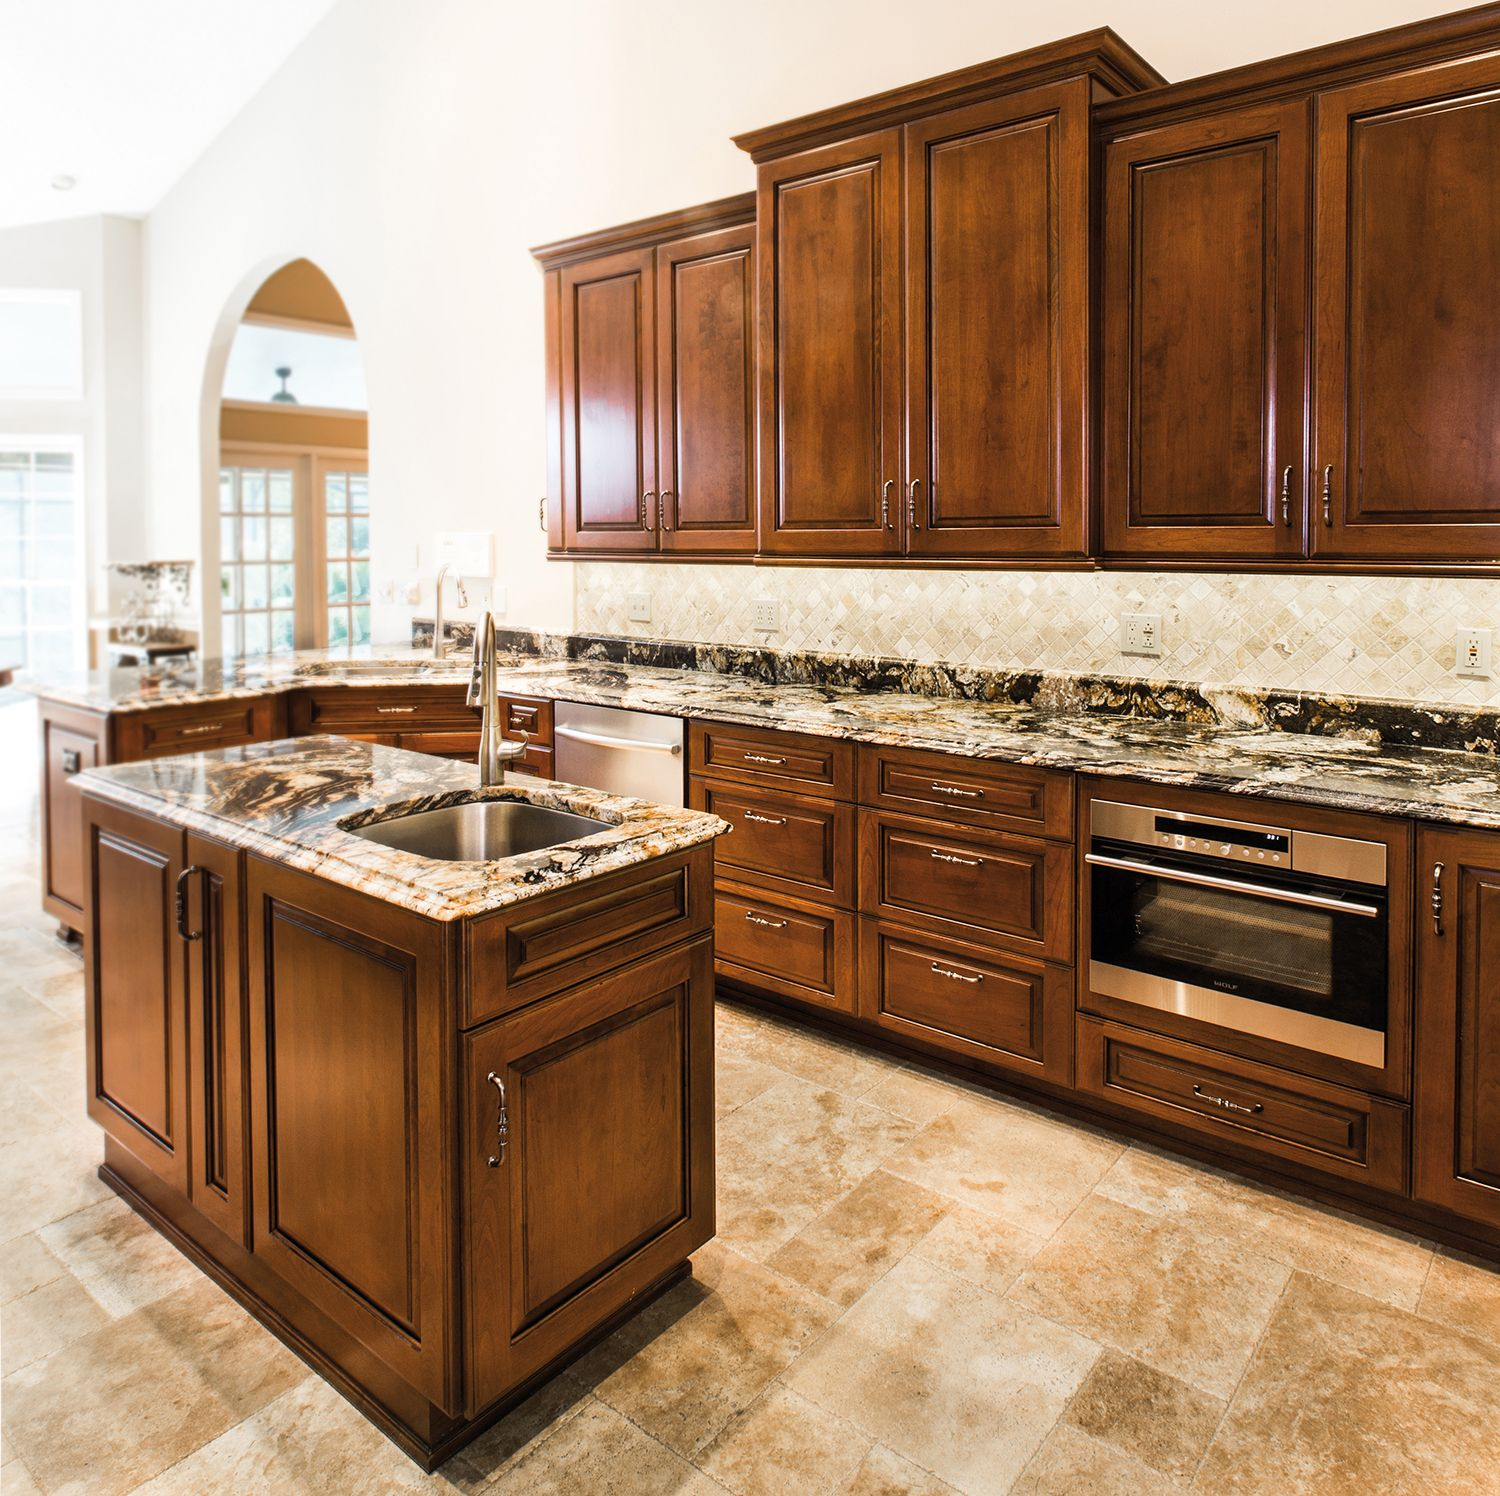 Cabico Custom Cabinetry - Traditional Kitchen - Design by Zelmar ...